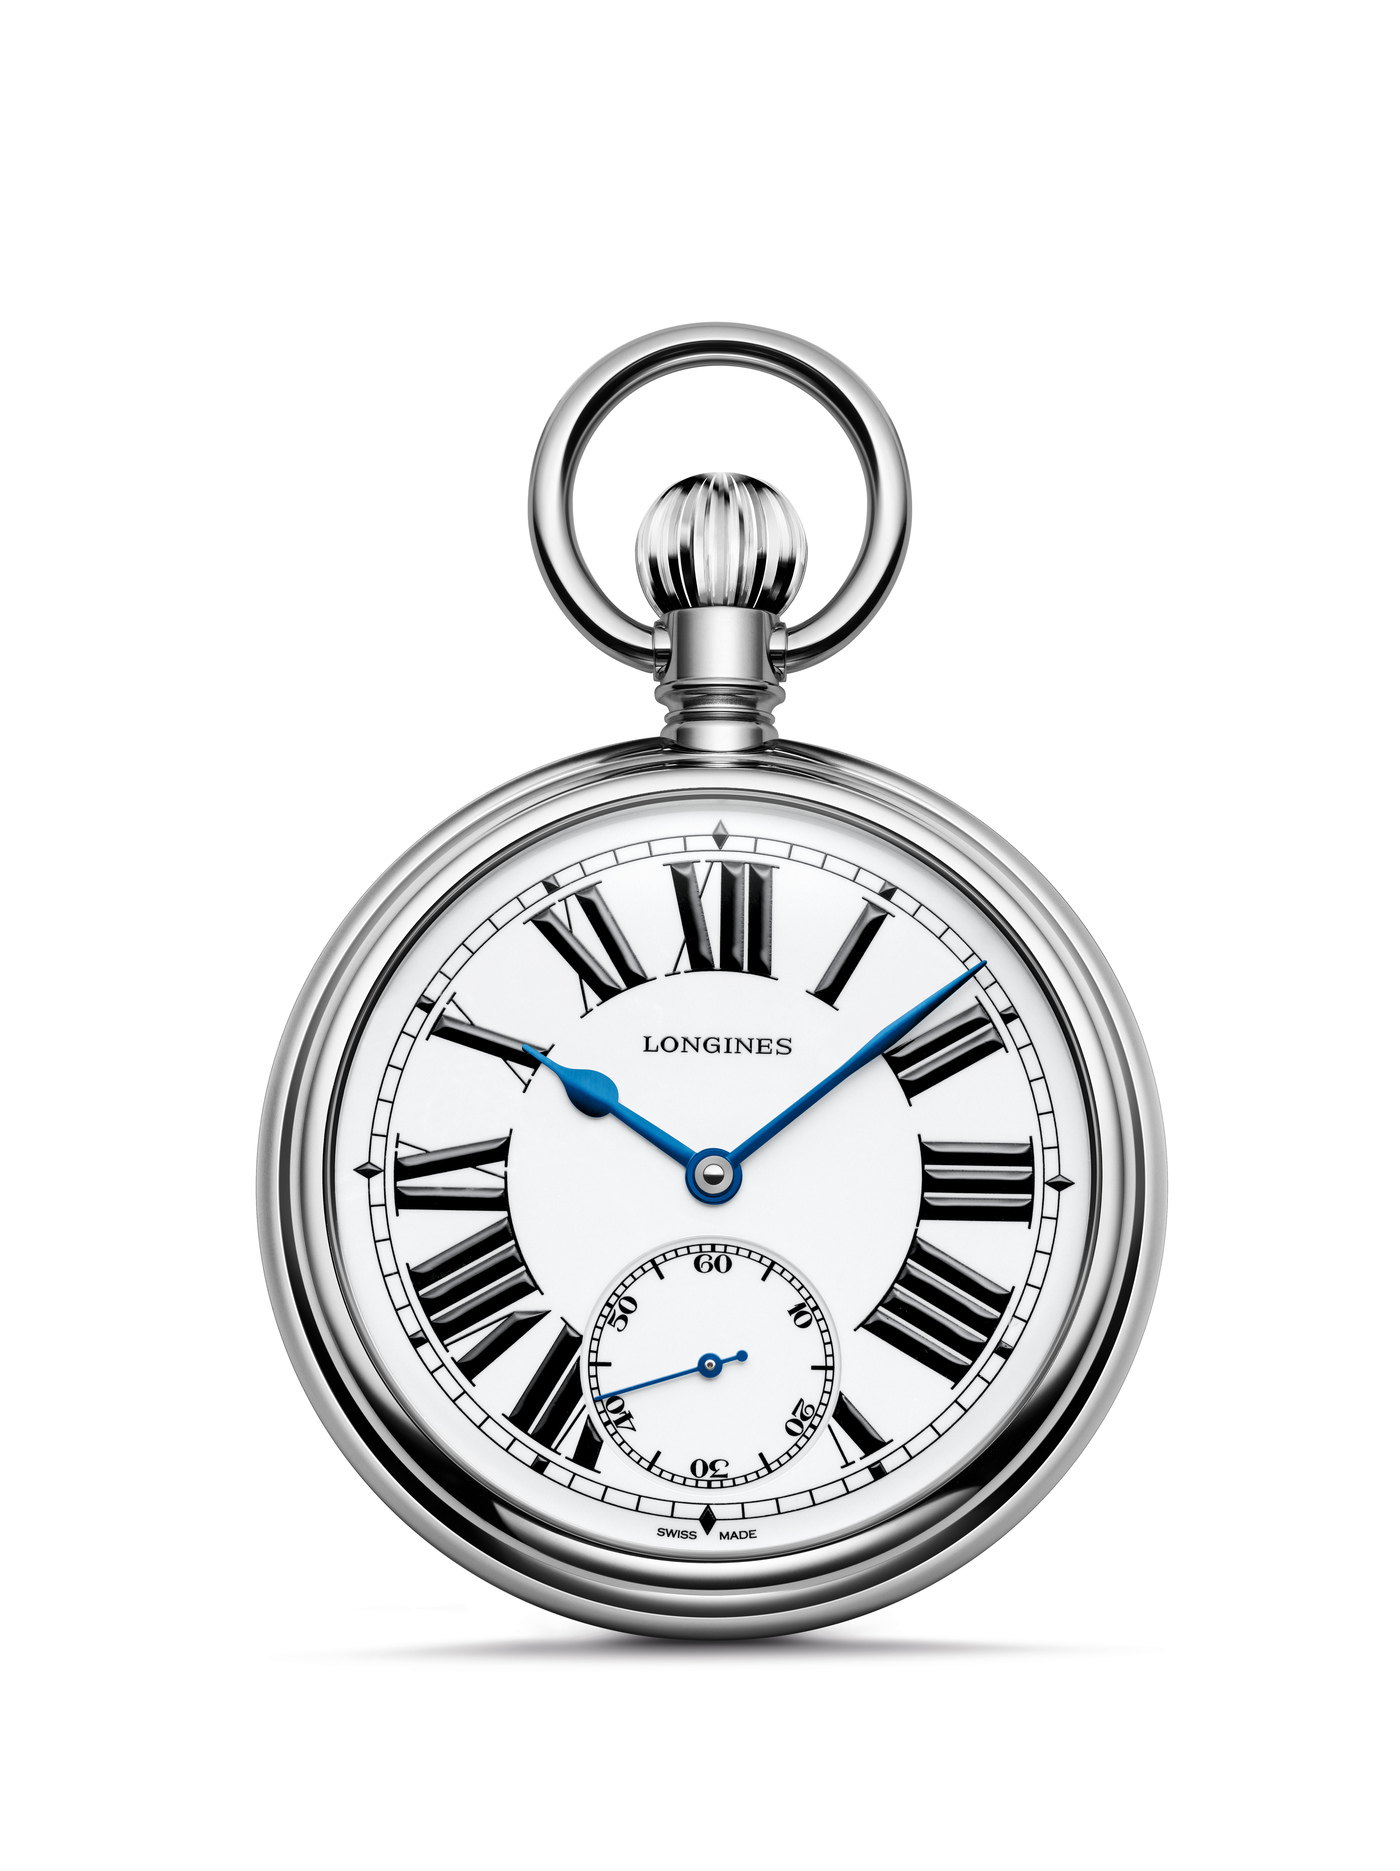 Longines The Longines RailRoad Pocket Watch Watch 3